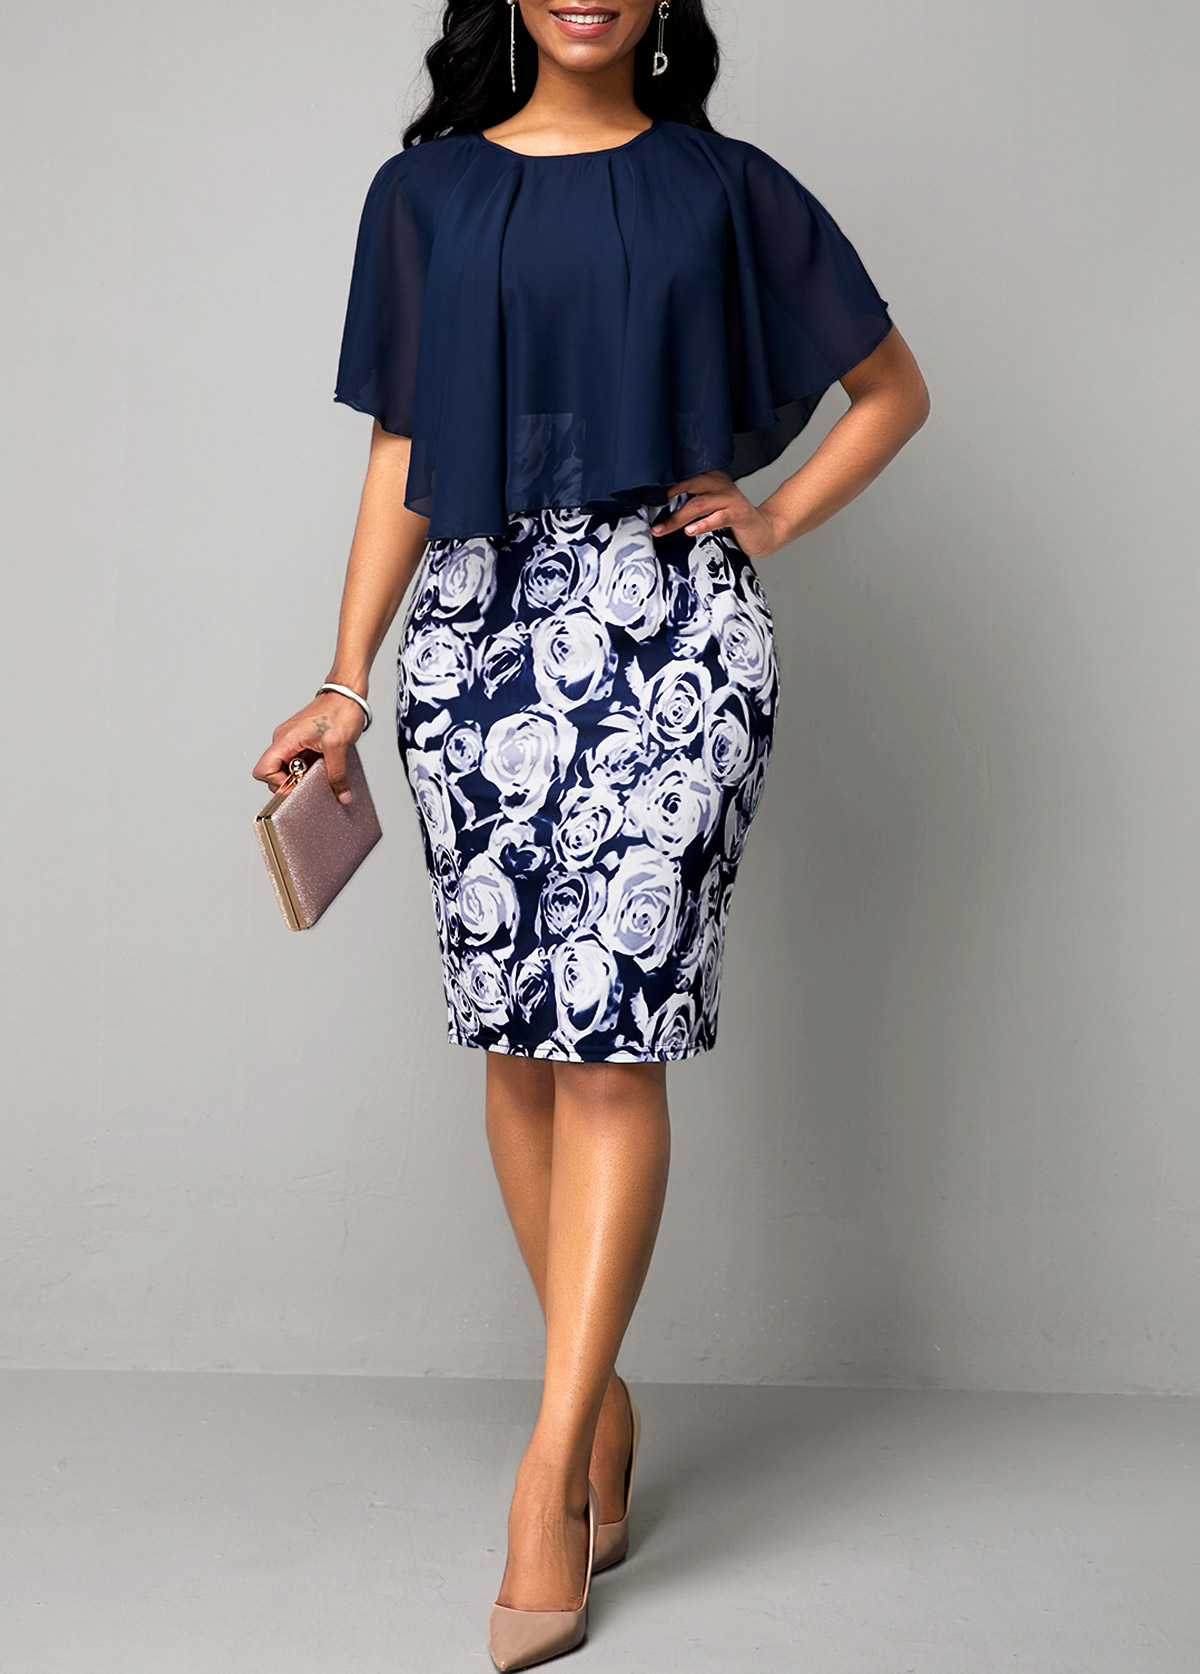 ROTITA Navy Blue Faux Two Piece Flower Print Dress